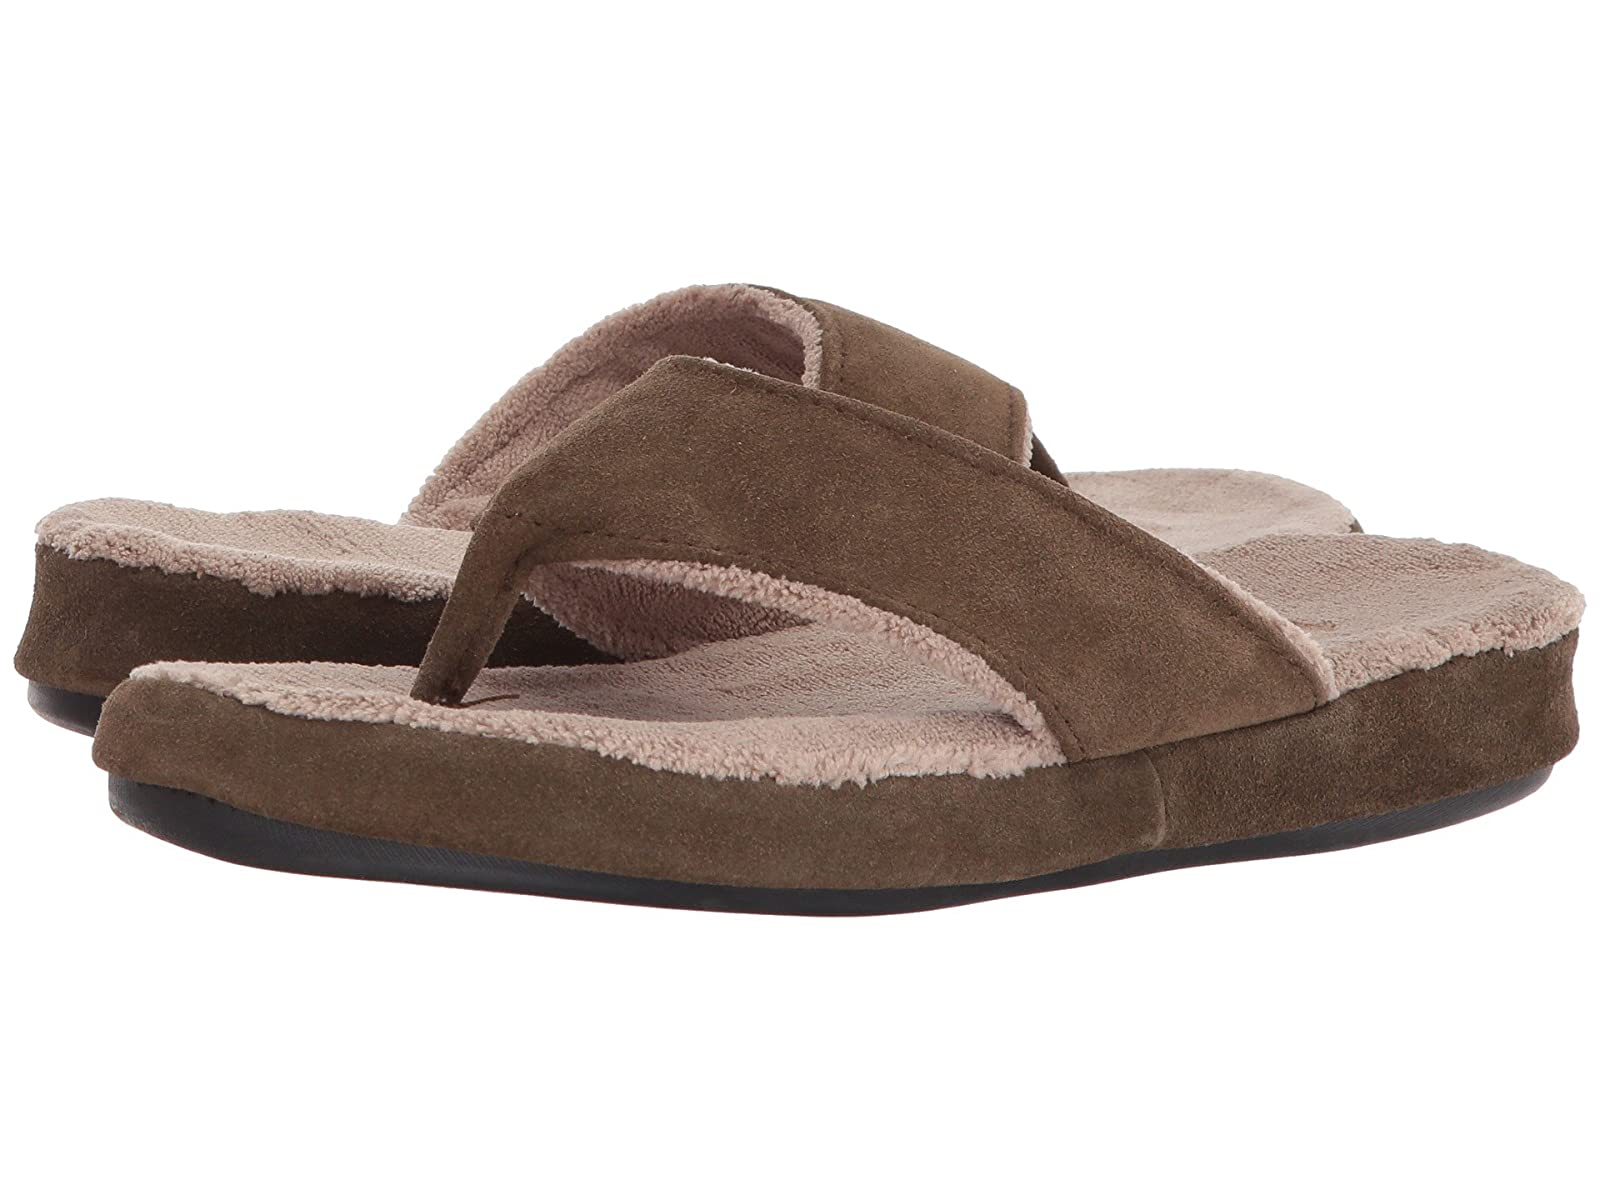 Acorn Suede Spa ThongAtmospheric grades have affordable shoes